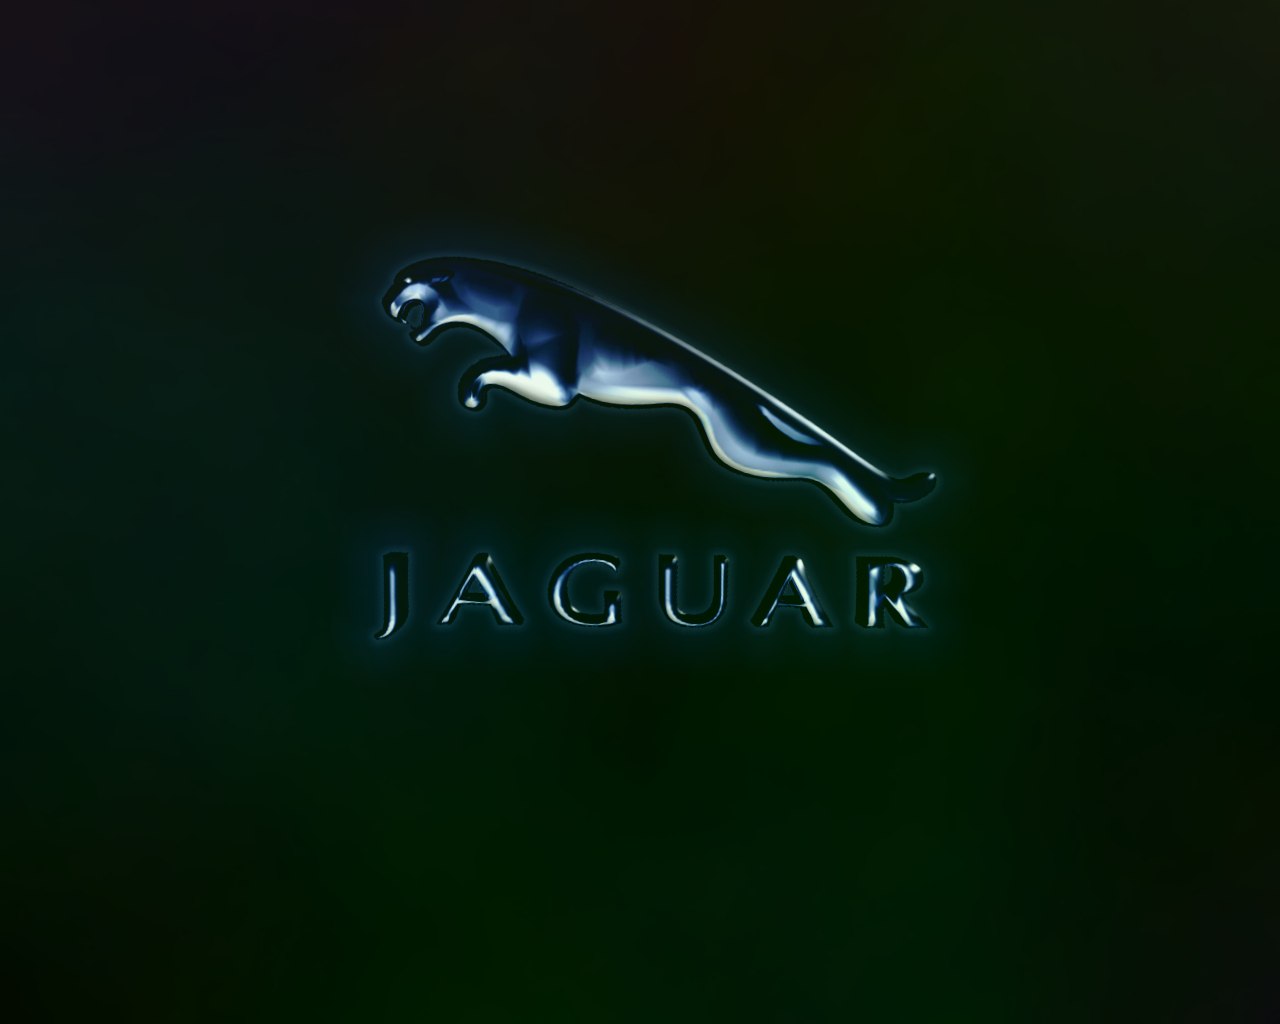 World Of Cars Jaguar Logo Wallpaper